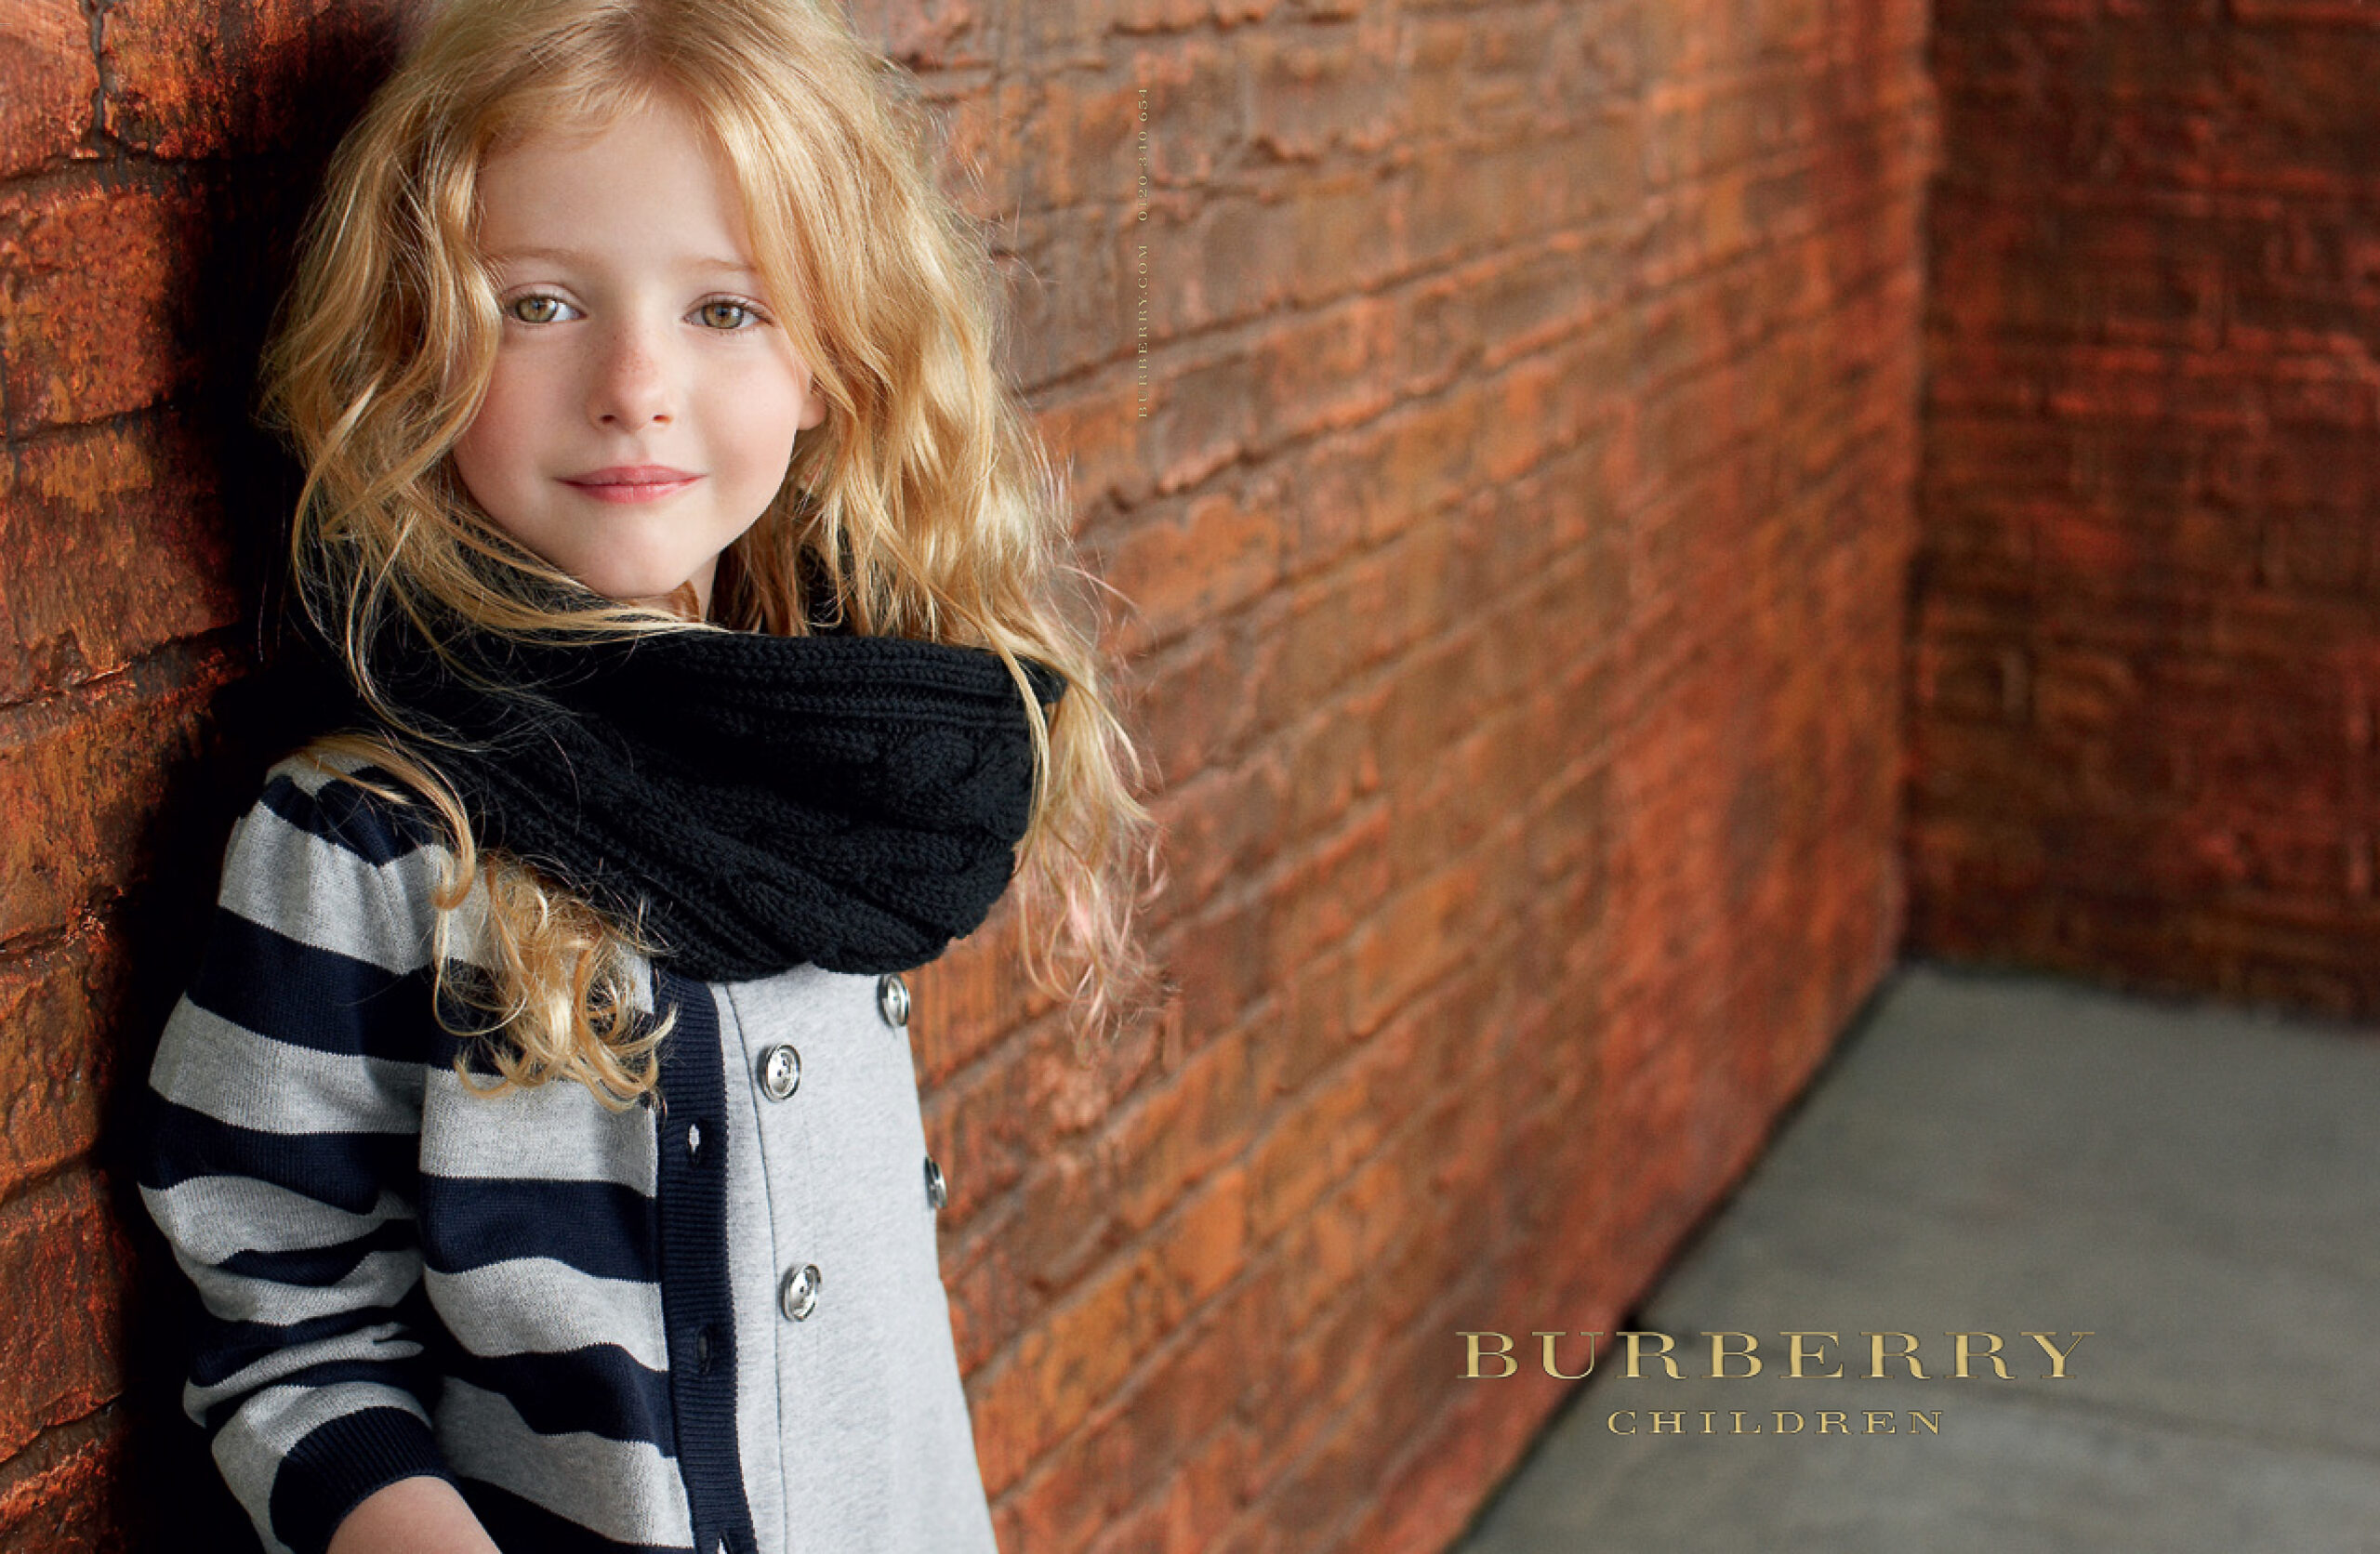 ingrid burberry children AW10_CWJ_CAMPAIGN-10 def